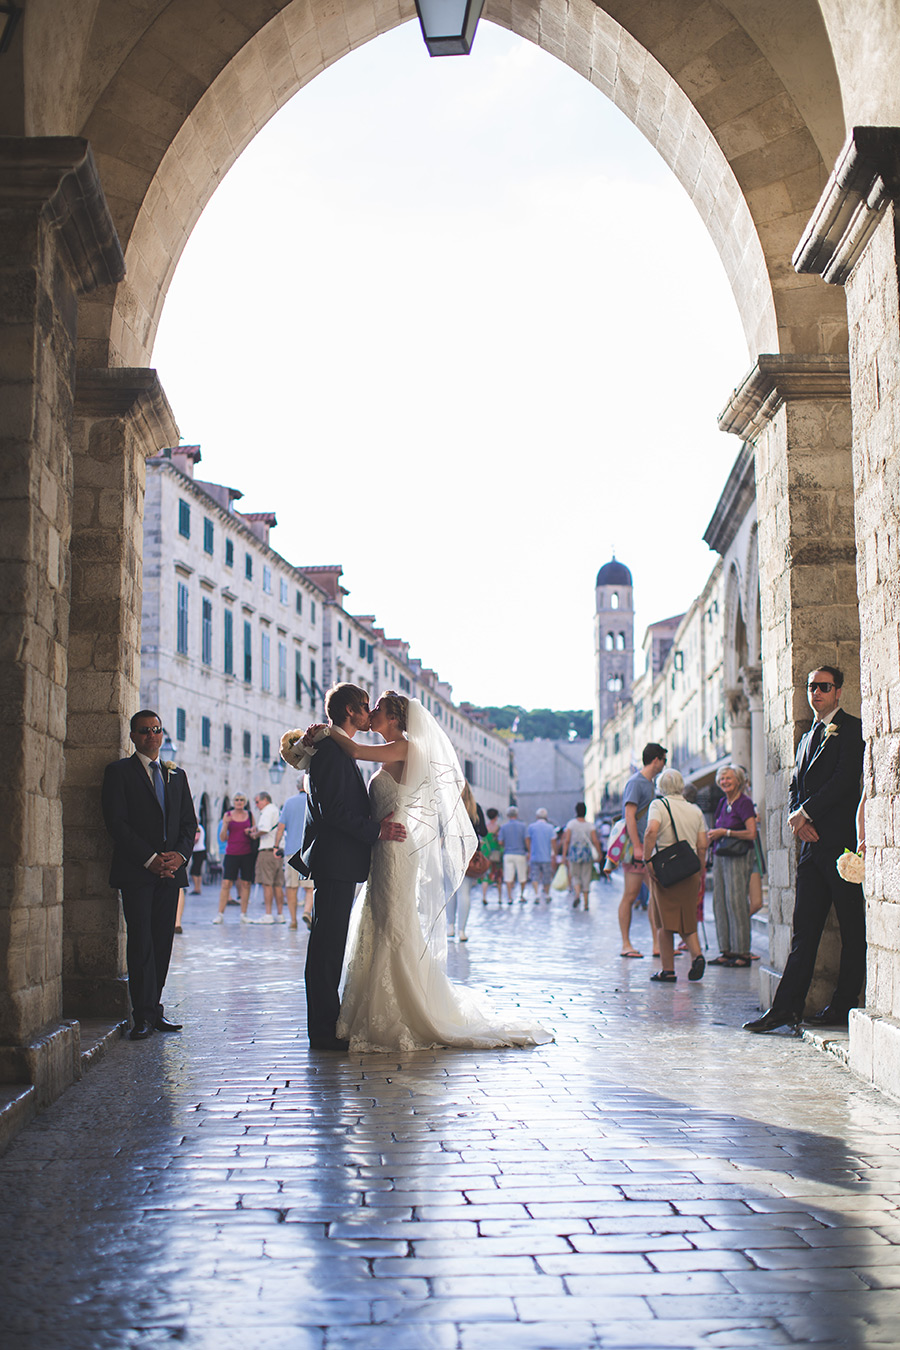 One of a set of images taken at this chic destination Wedding of Jenna & Nick. The stylish old town of Dubrovnik, Croatia.  The couple share a kiss.  Photography by Matt Porteous